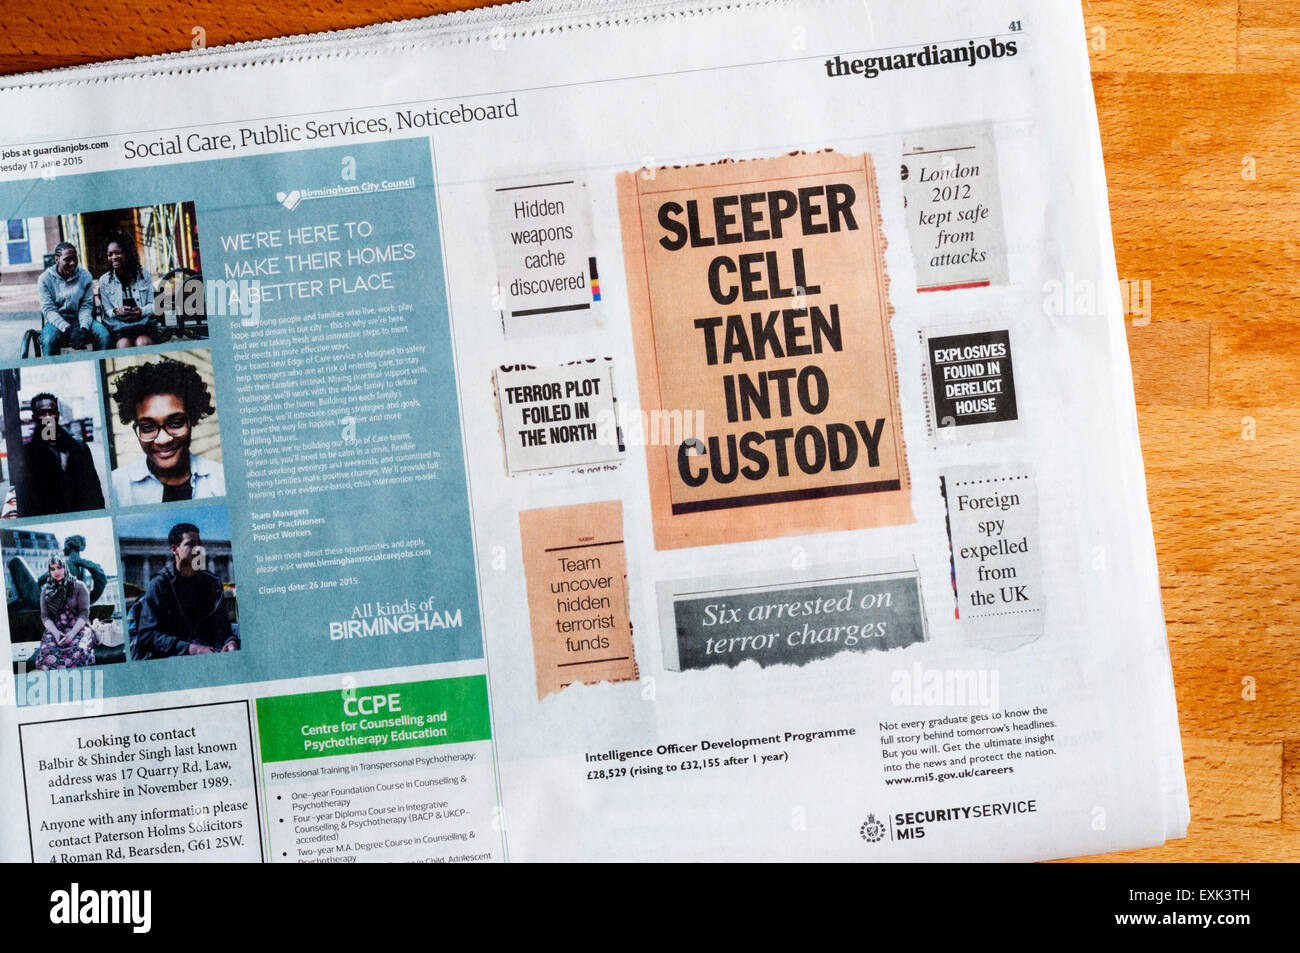 A job advertisement for the post of an Intelligence Officer with the Security Service, MI5, in The Guardian newspaper. - Stock Image